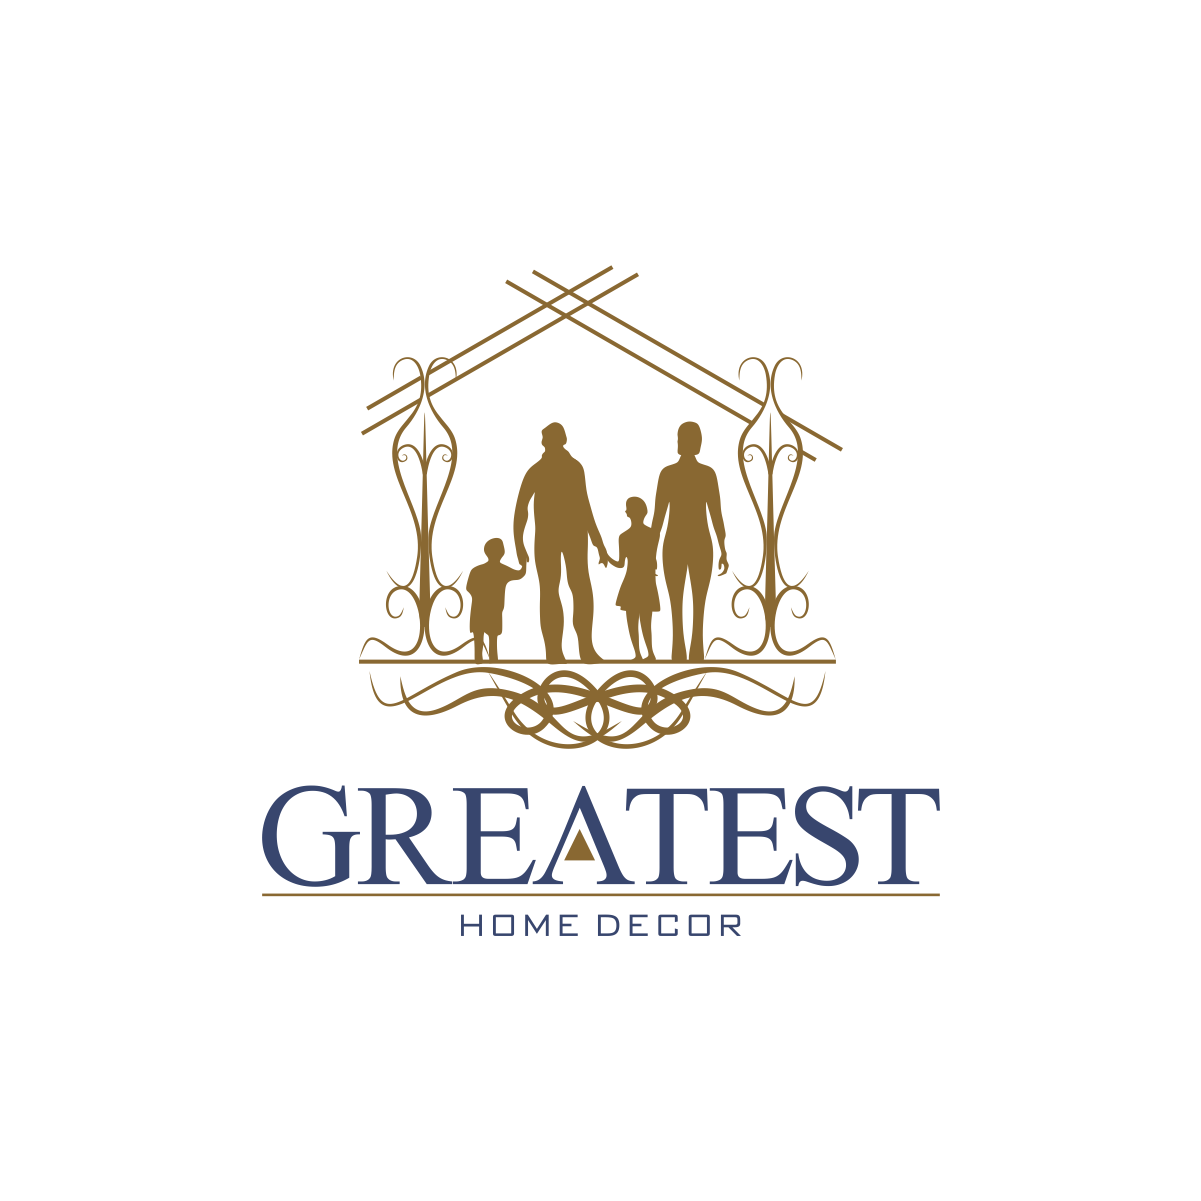 Logo Design For Greatest Home Decor By Moisesf Design 20049381